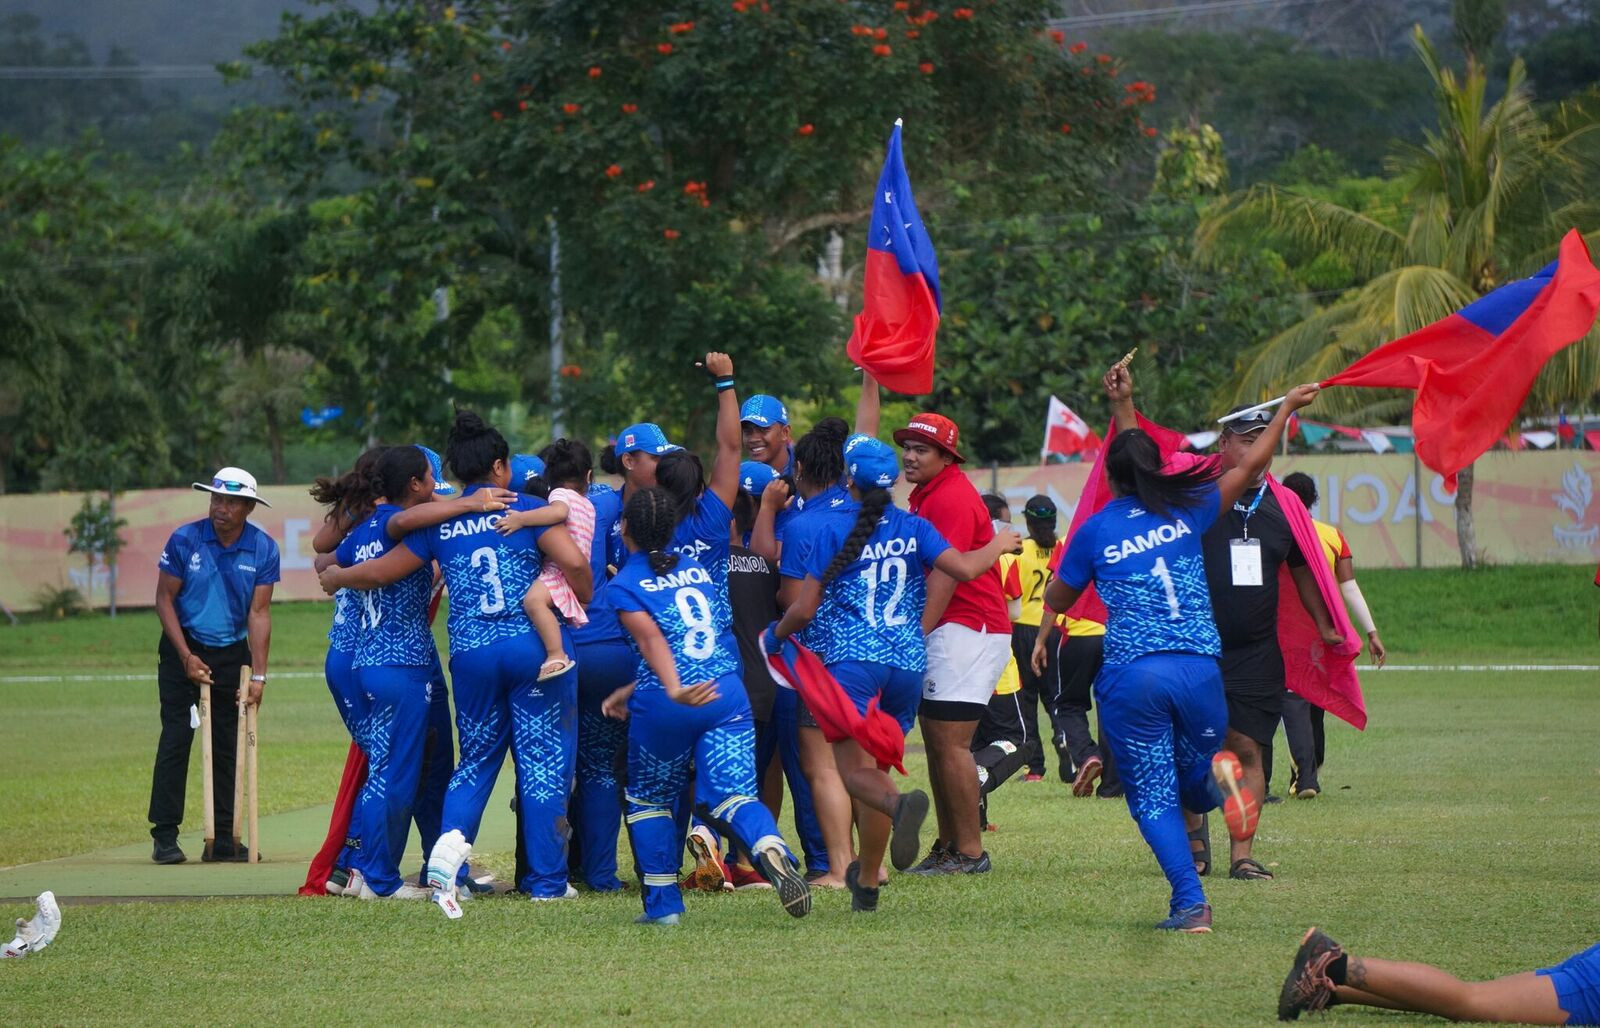 Samoa's players rush onto the field to celebrate after winning gold in the women's cricket ©Samoa 2019